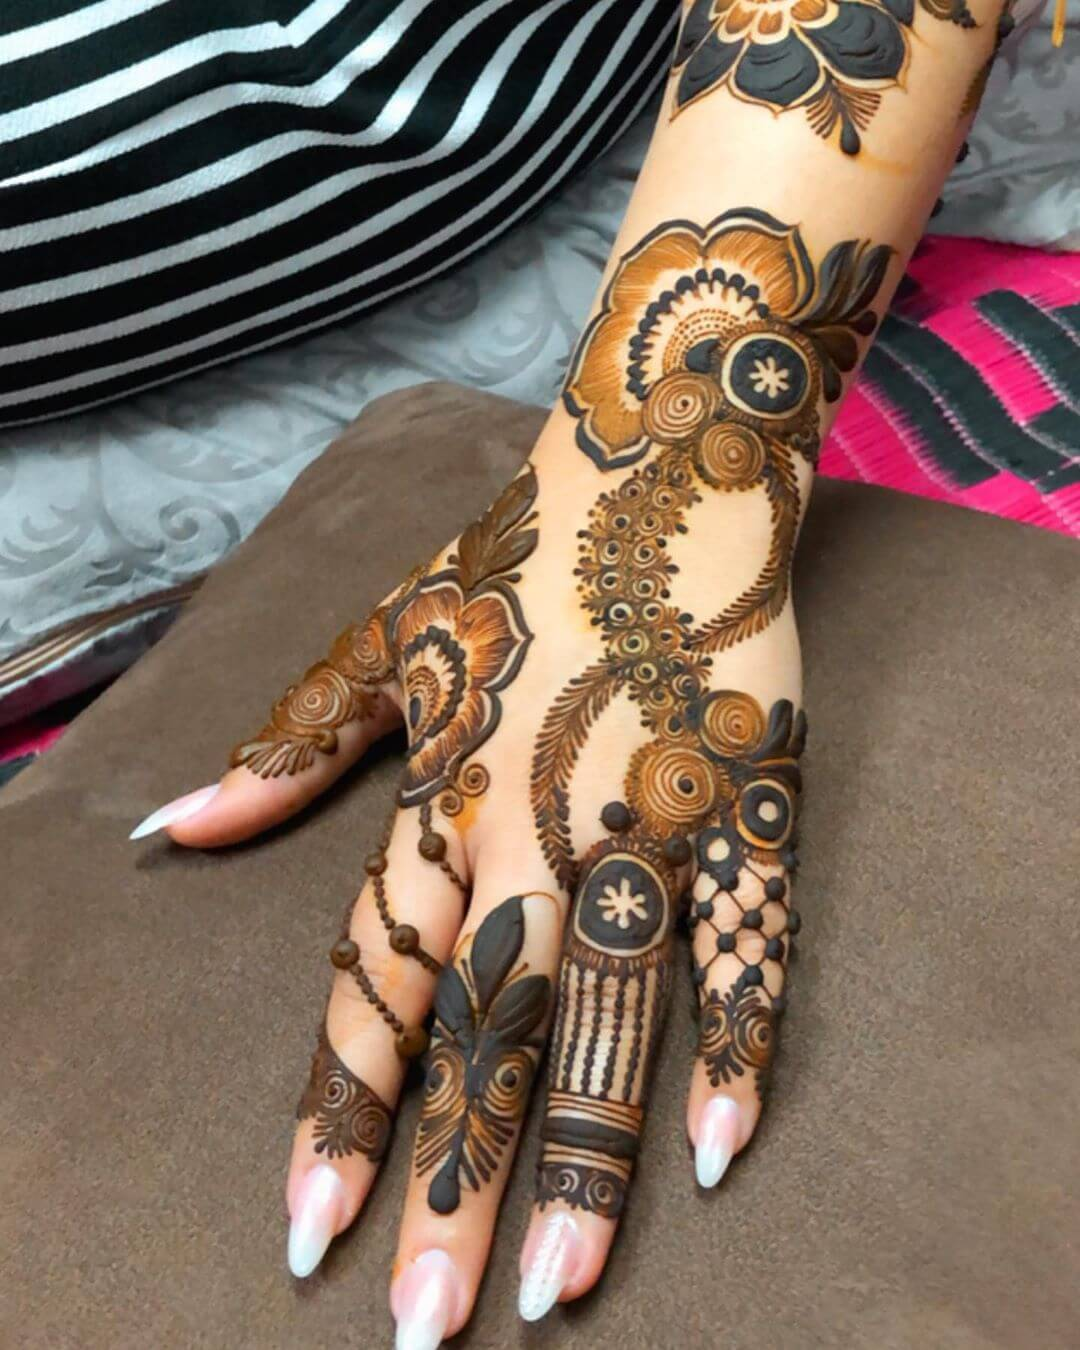 Mesmerizing Floral Motifs Latest Mehndi Designs for Raksha Bandhan